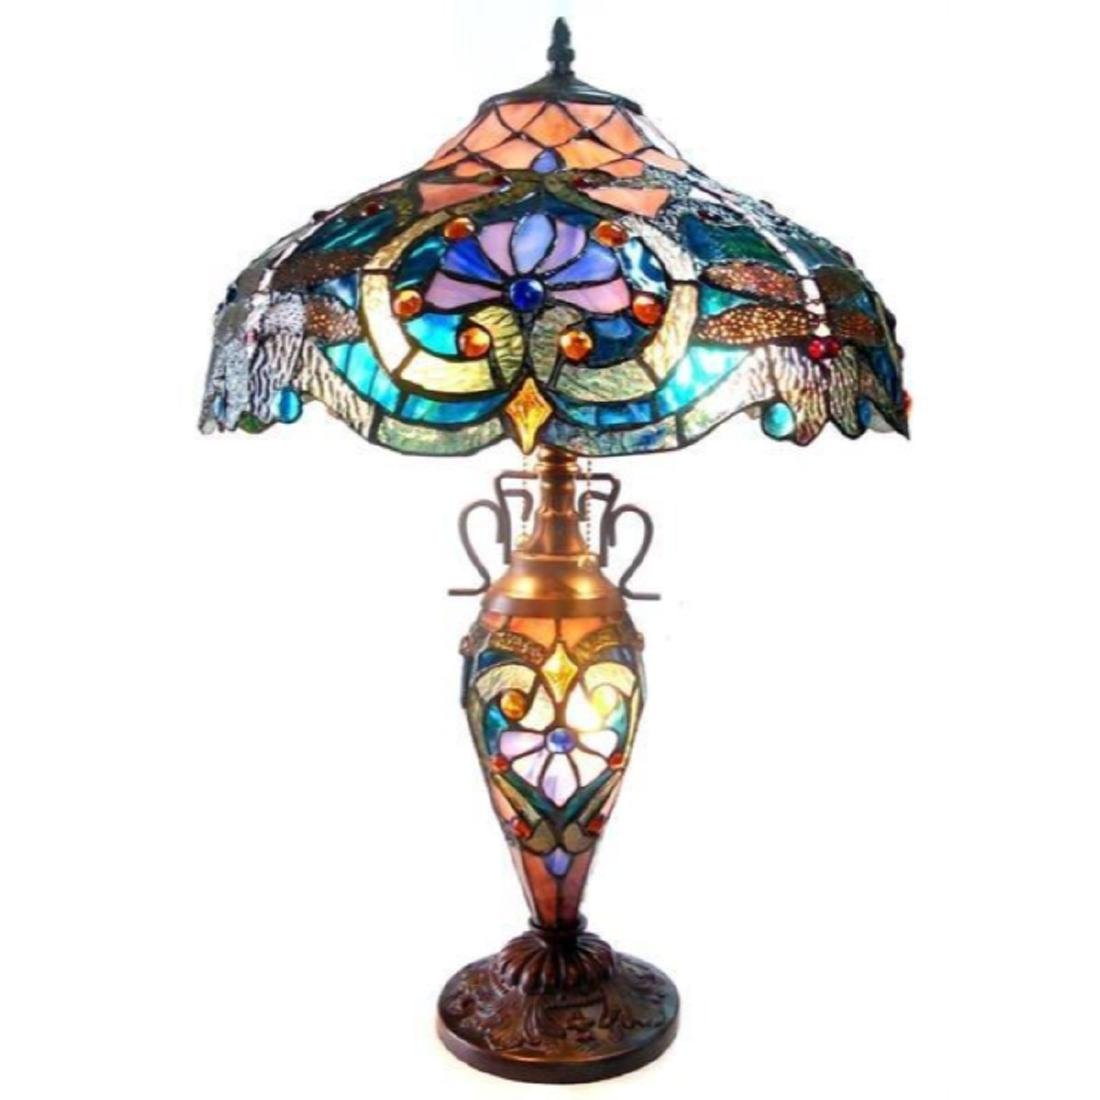 Tiffany-style Victorian Design Table Lamp